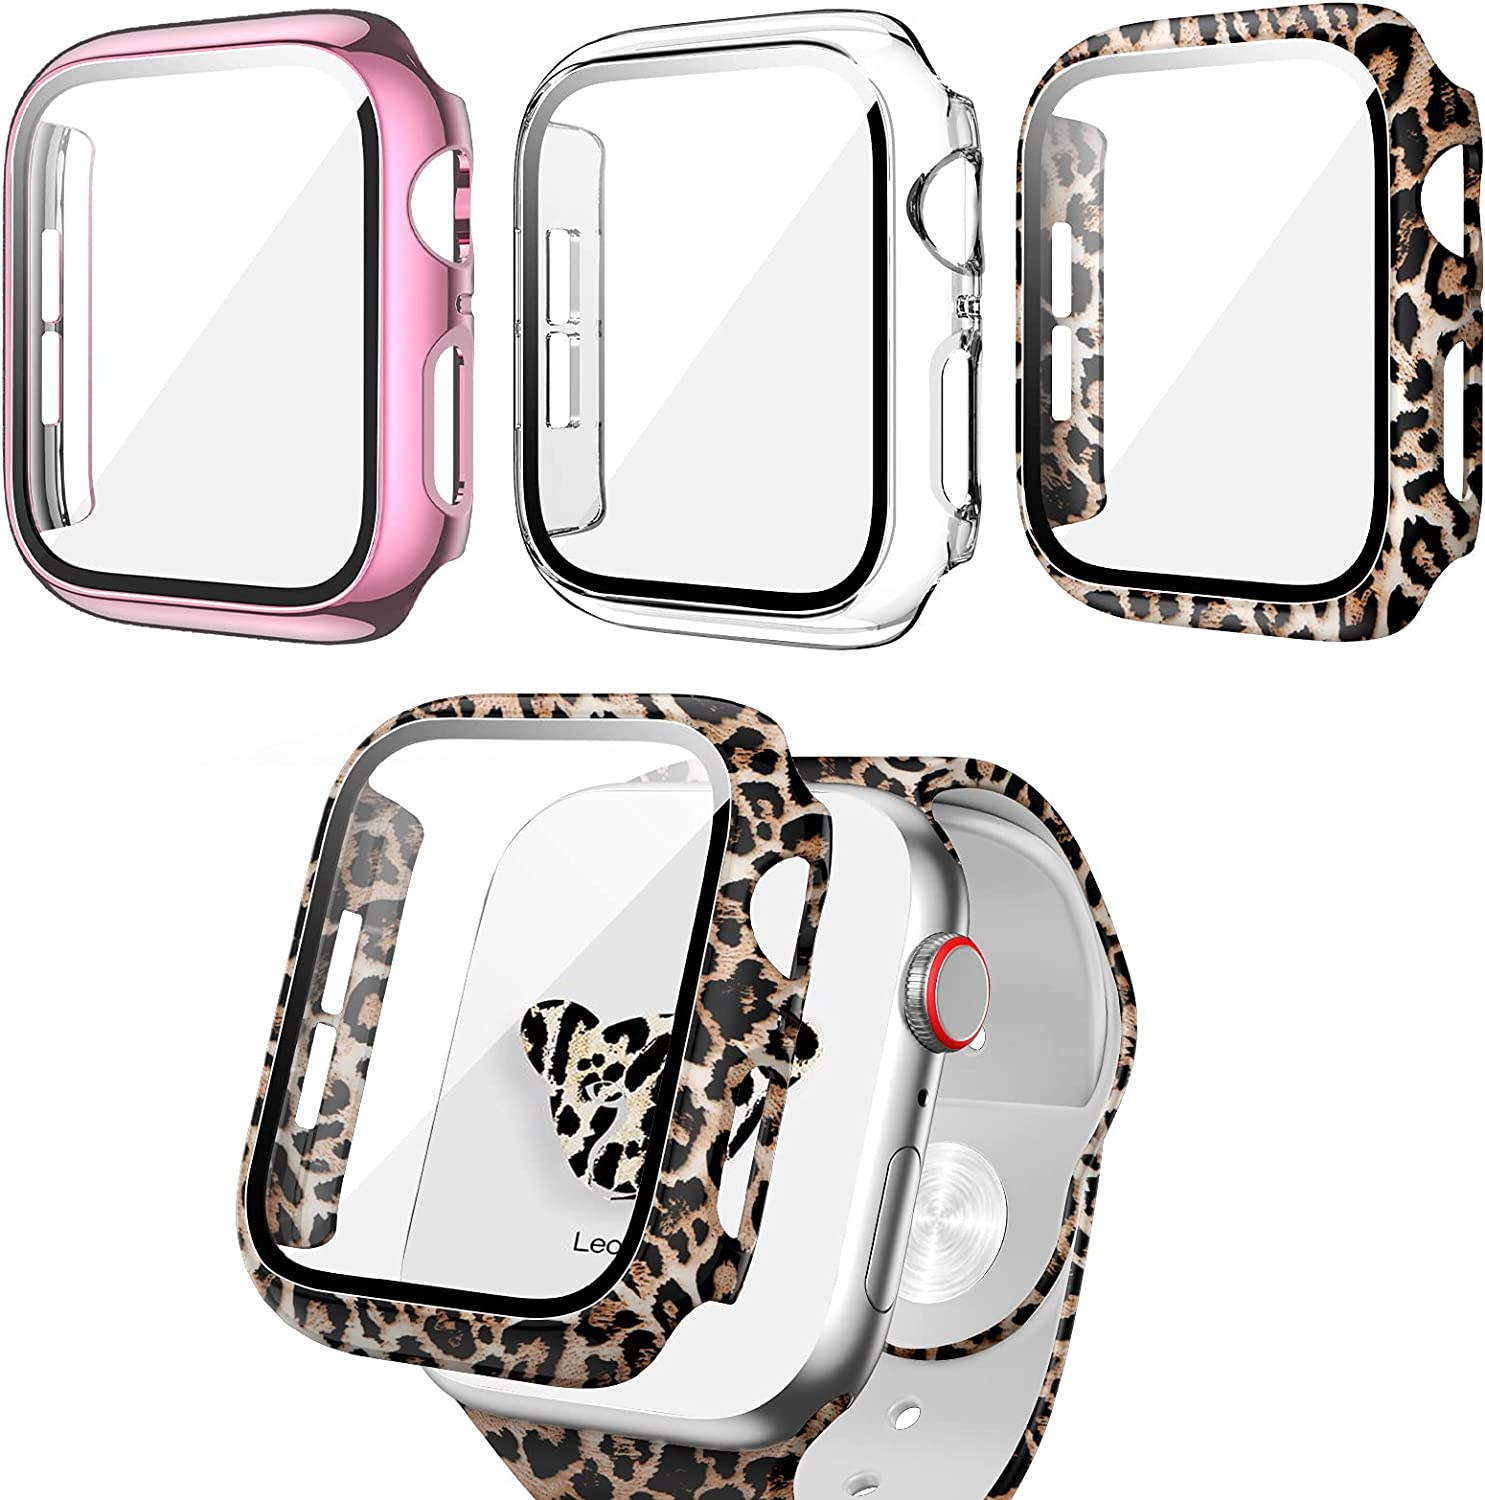 3 Pack Apple Watch Case with Tempered Glass Screen Protector for Apple Watch 44mm Series 6/5/4/SE,RTong Full Hard PC Ultra-Thin Scratch Resistant Thin Bumper HD Protective Cover for iWatch 44mm